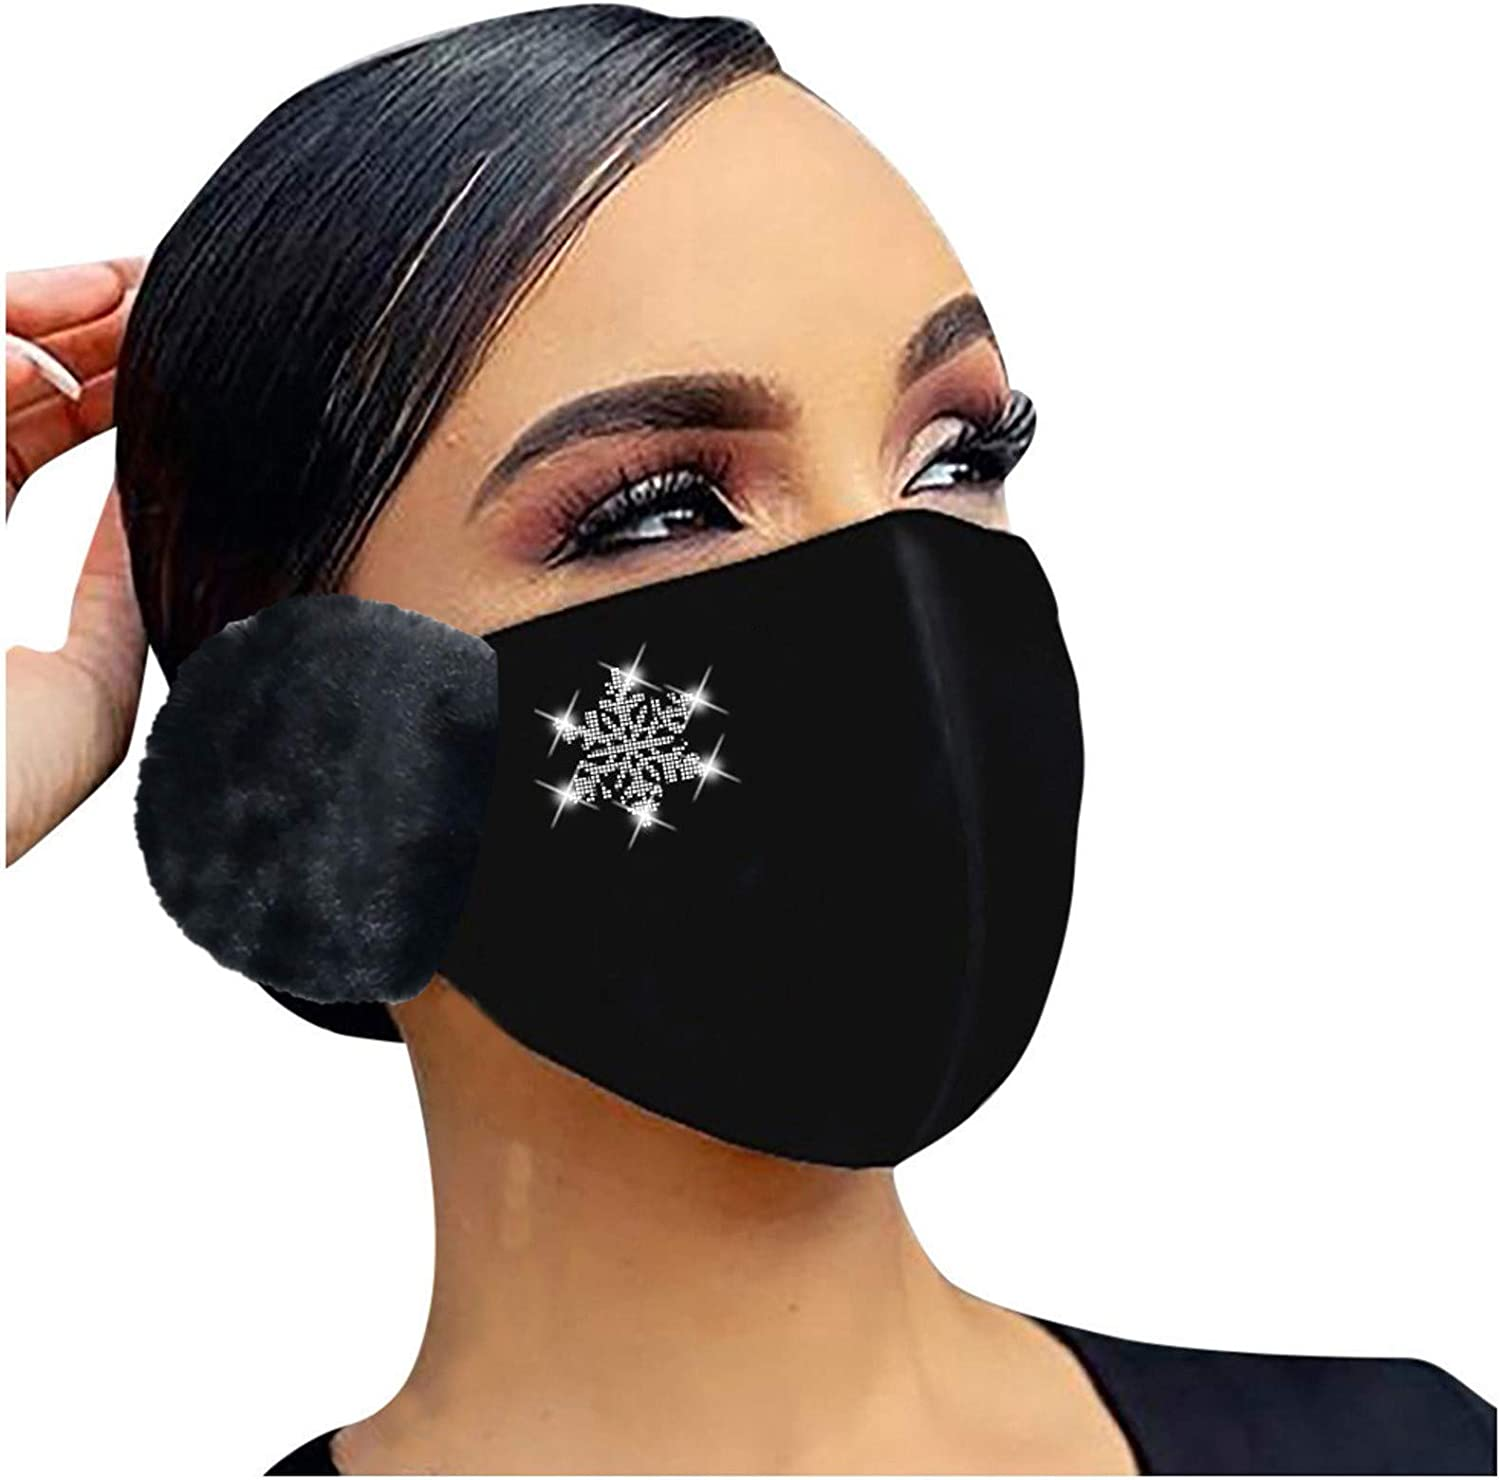 Nopeak Adult 2-in-1 Face Bandanas With Earmuffs,Winter Rhinestone Warm Mouth Caps,Washable Windproof Ear Muffs